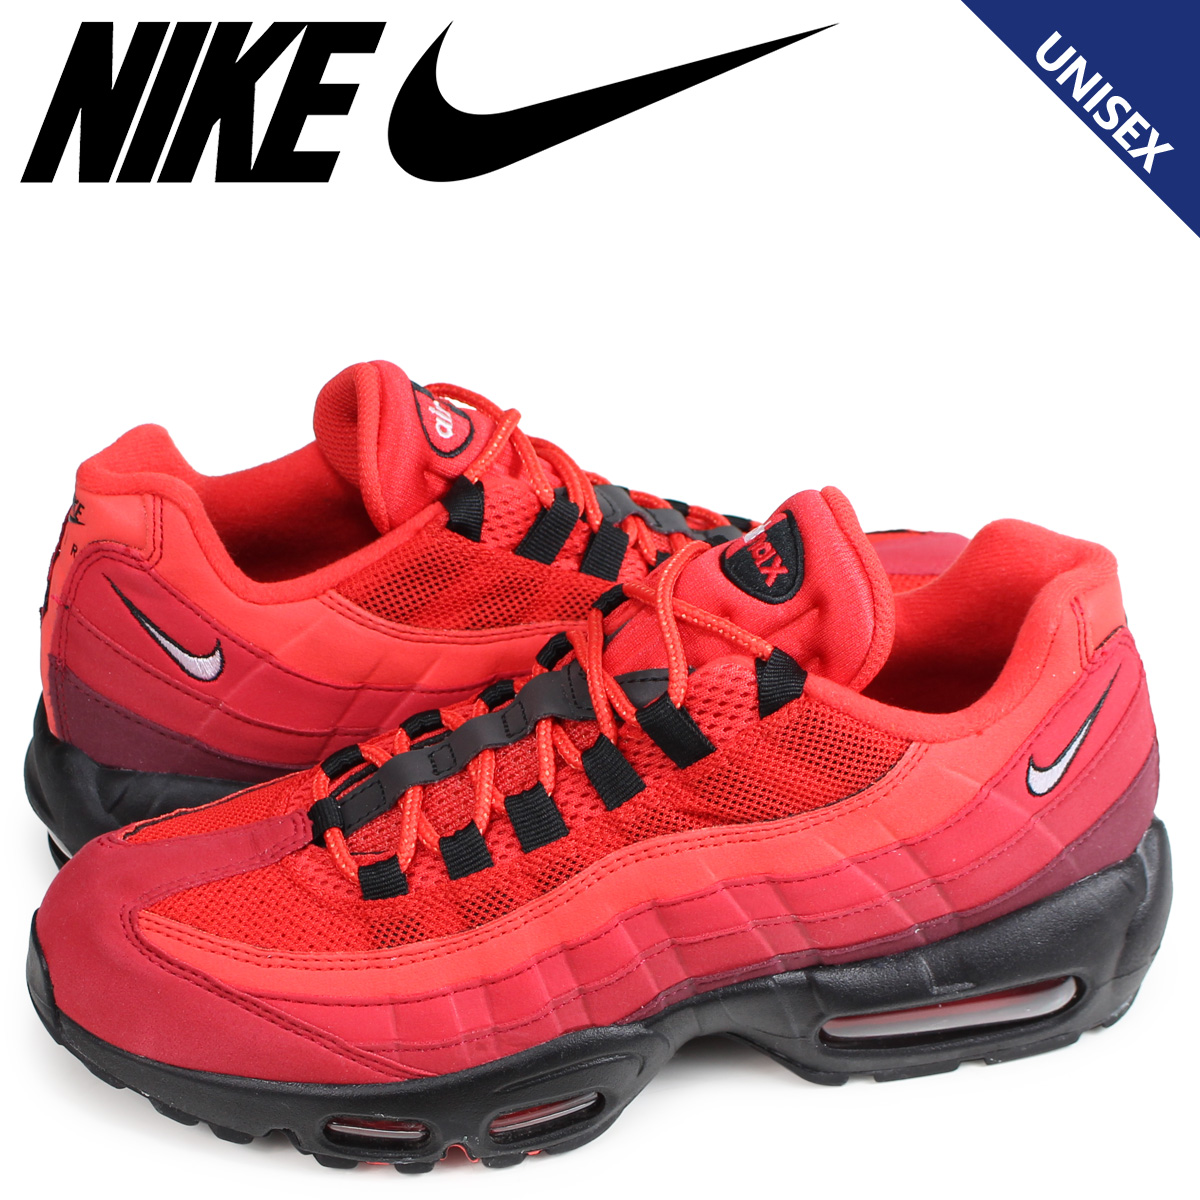 best service 63596 fe174 NIKE AIR MAX 95 OG Kie Ney AMAX 95 sneakers men gap Dis red AT2865- ...